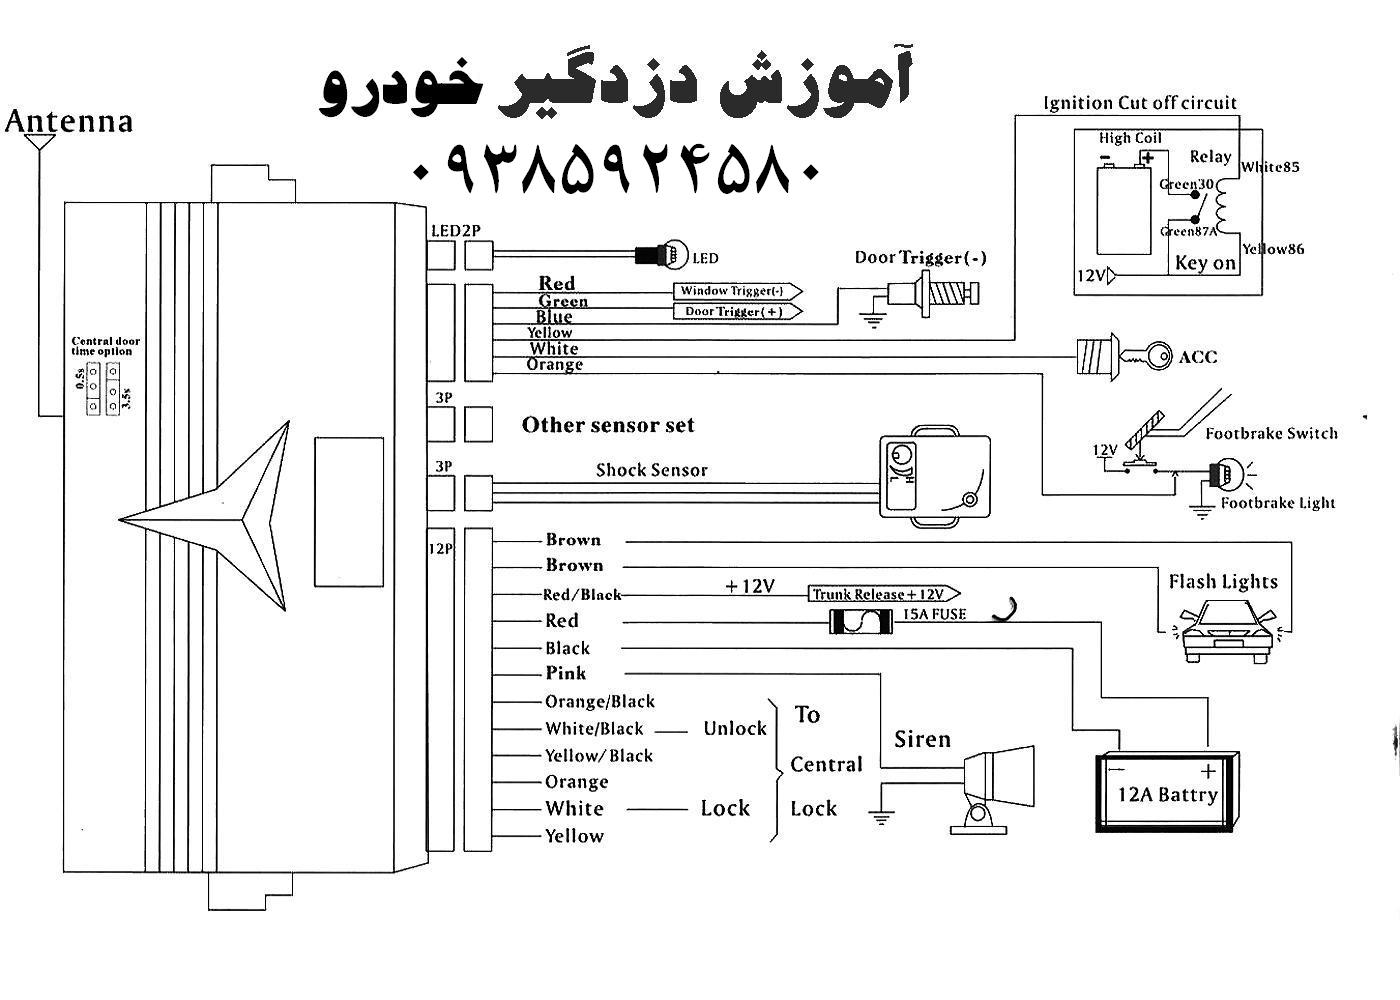 car alarm map (10) wiring diagram for viper car alarm efcaviation com viper car alarm wiring diagram at mr168.co